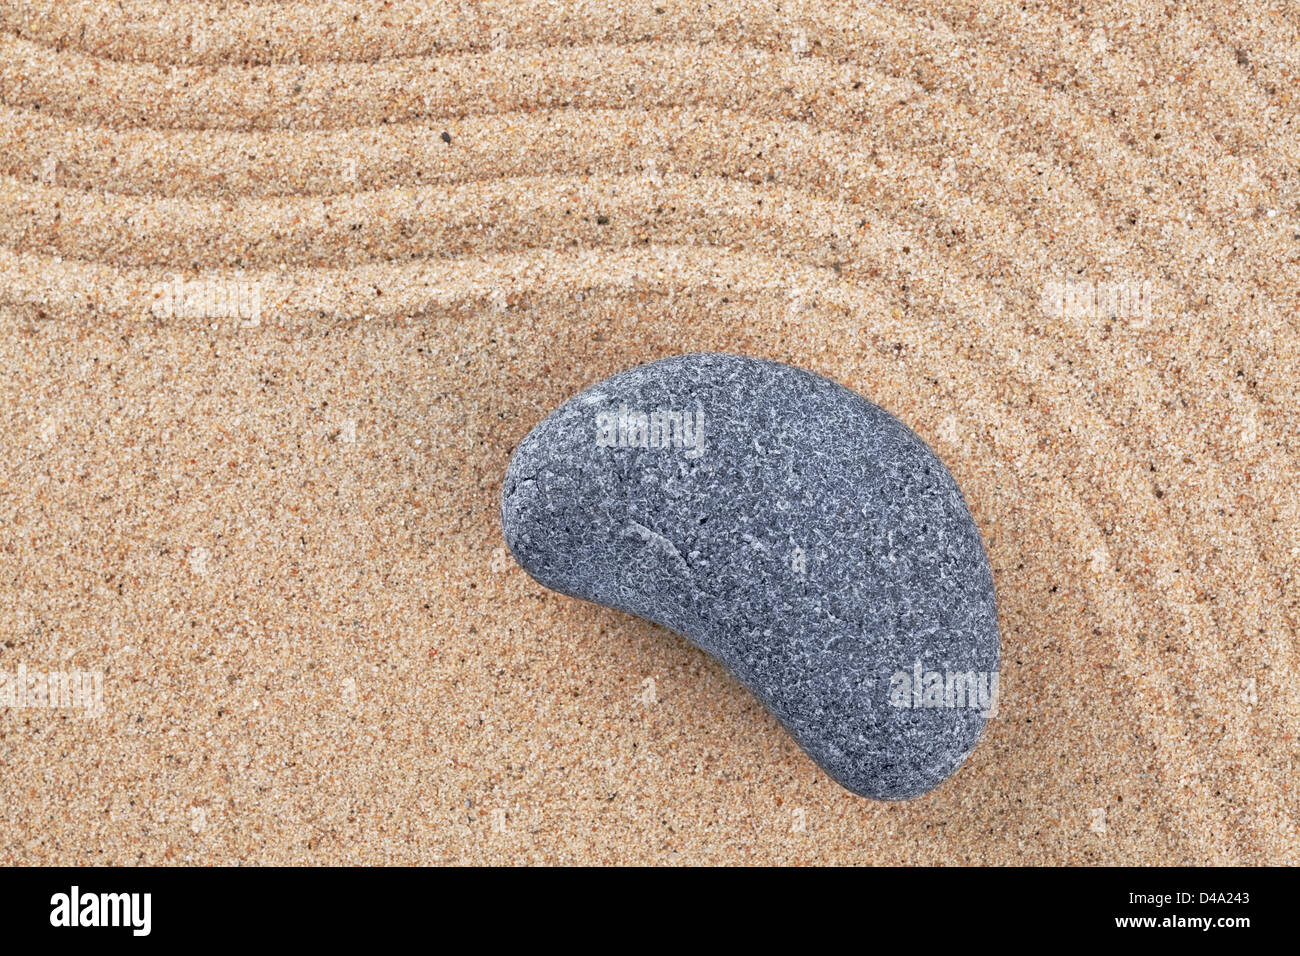 A curved pebble on a raked sand zen garden - Stock Image